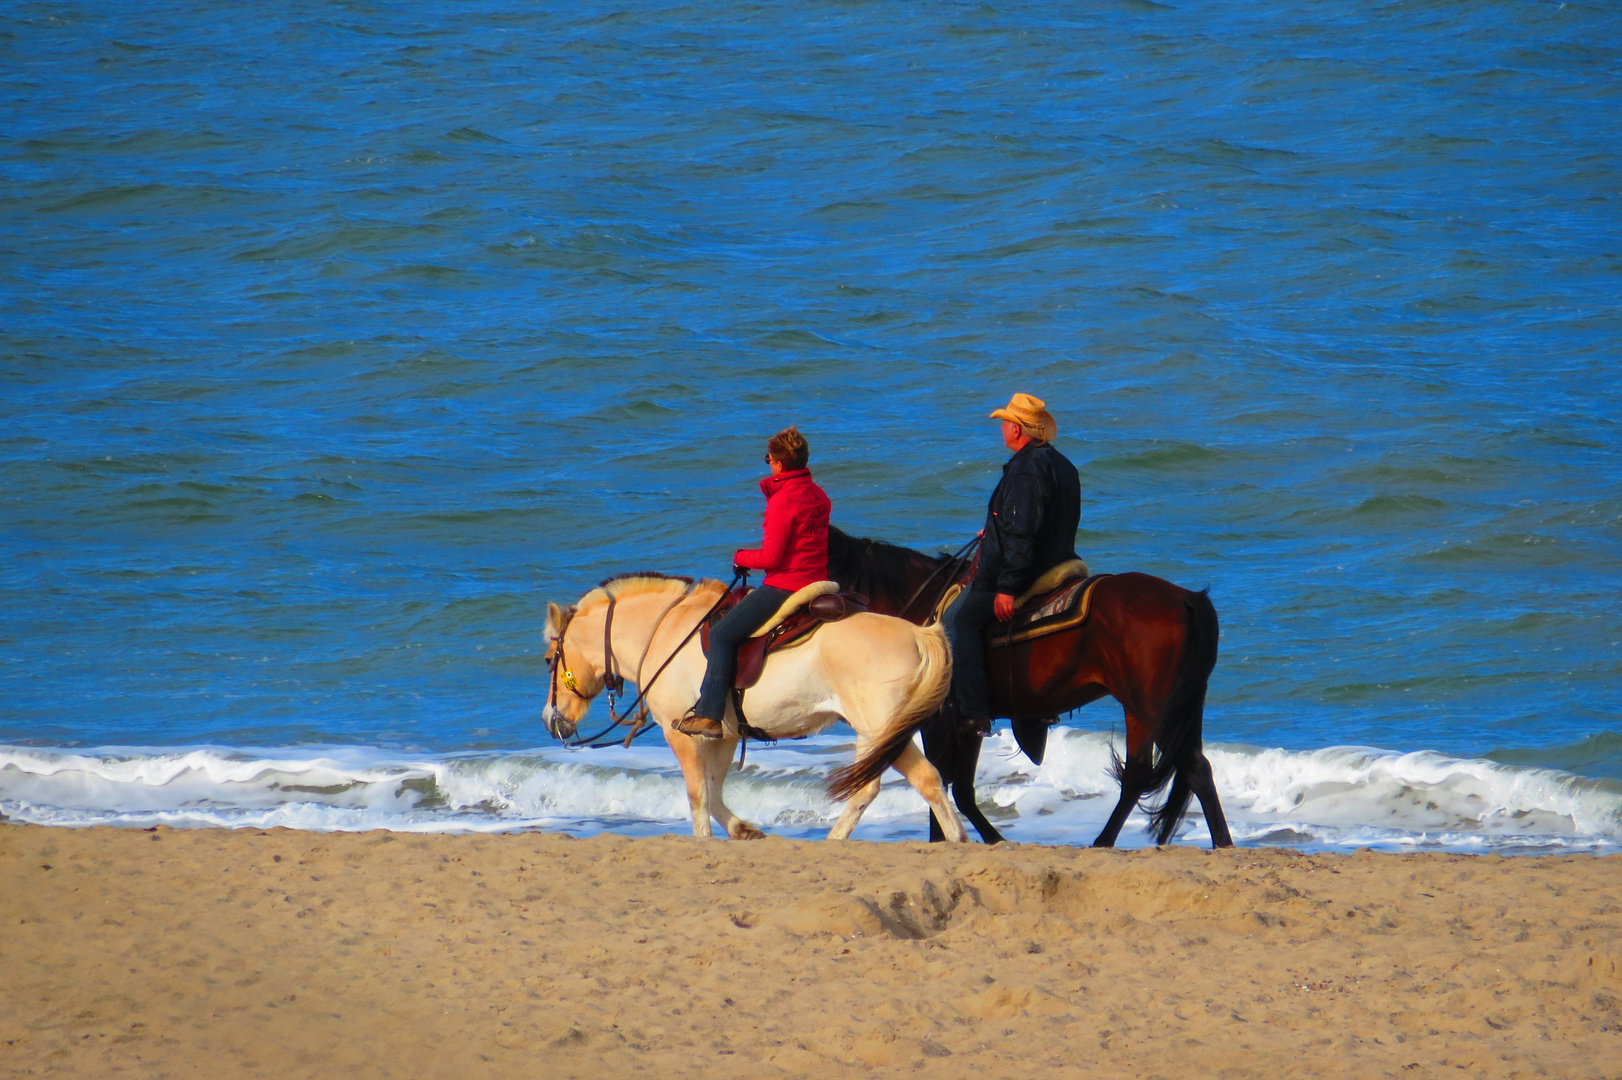 Relaxing riders and horses at the beach